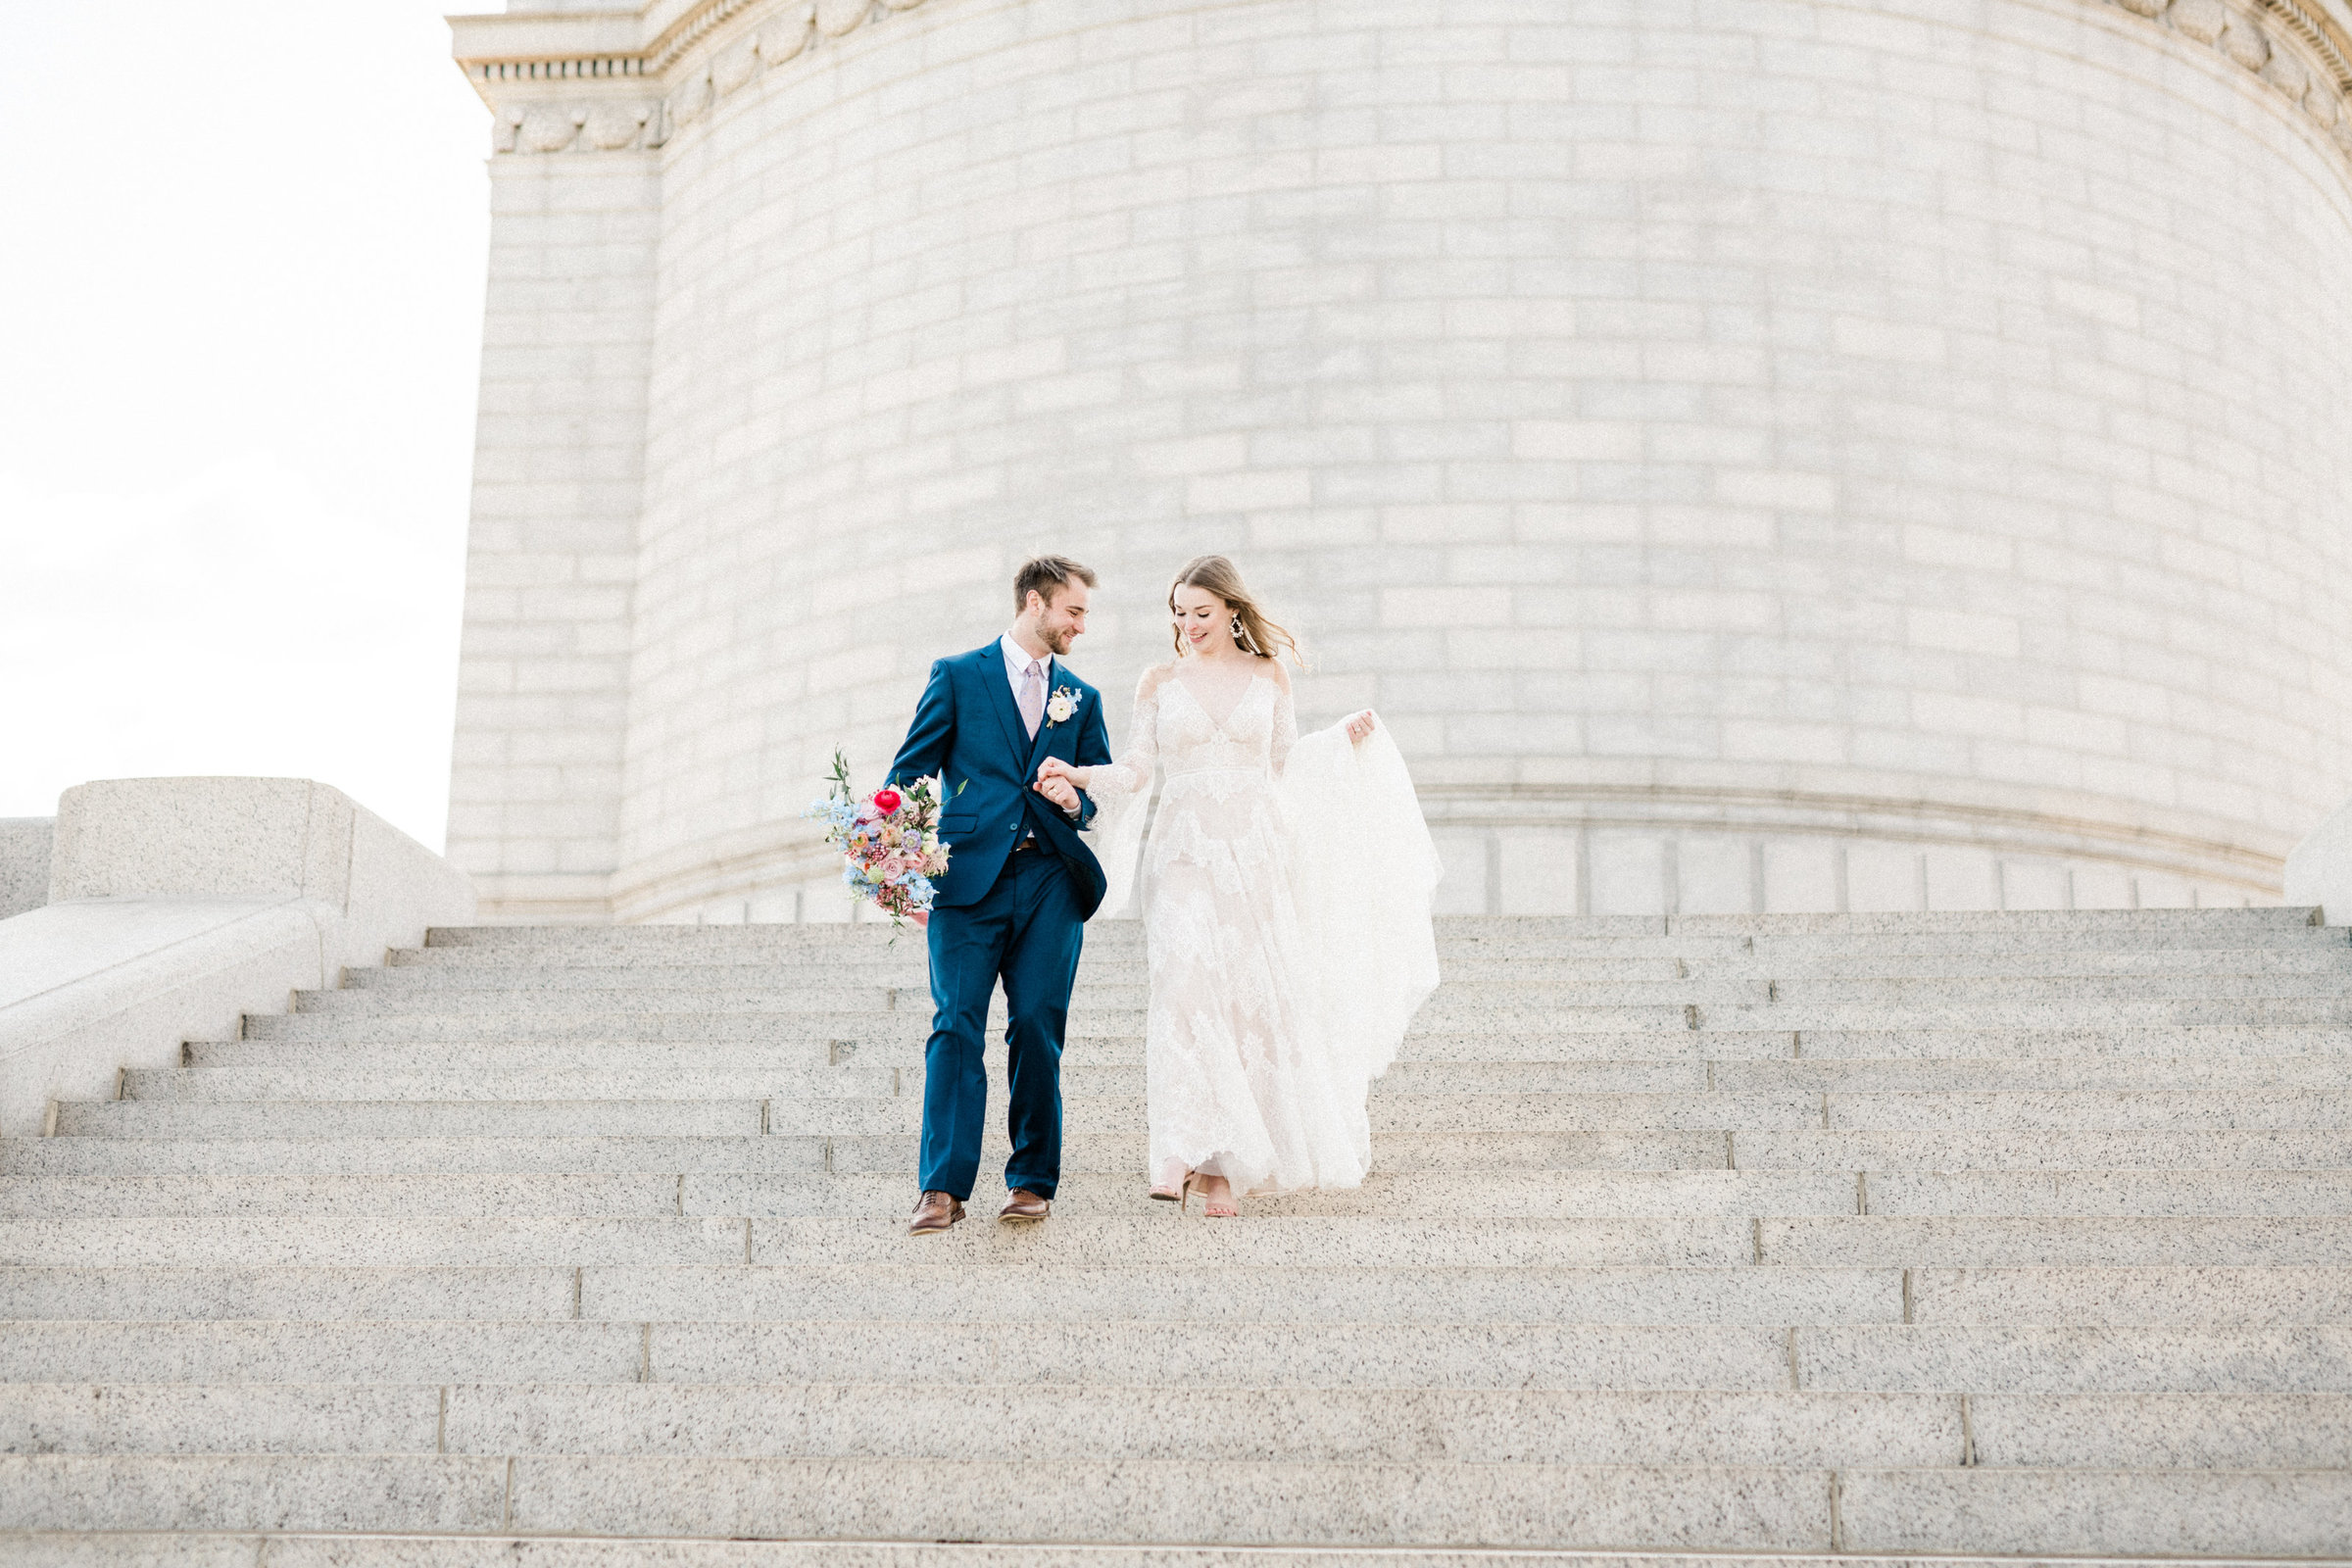 Bride & Groom at McKinley Monument, Wedding Planned by Sirpilla Soirees, Cleveland Wedding Planner